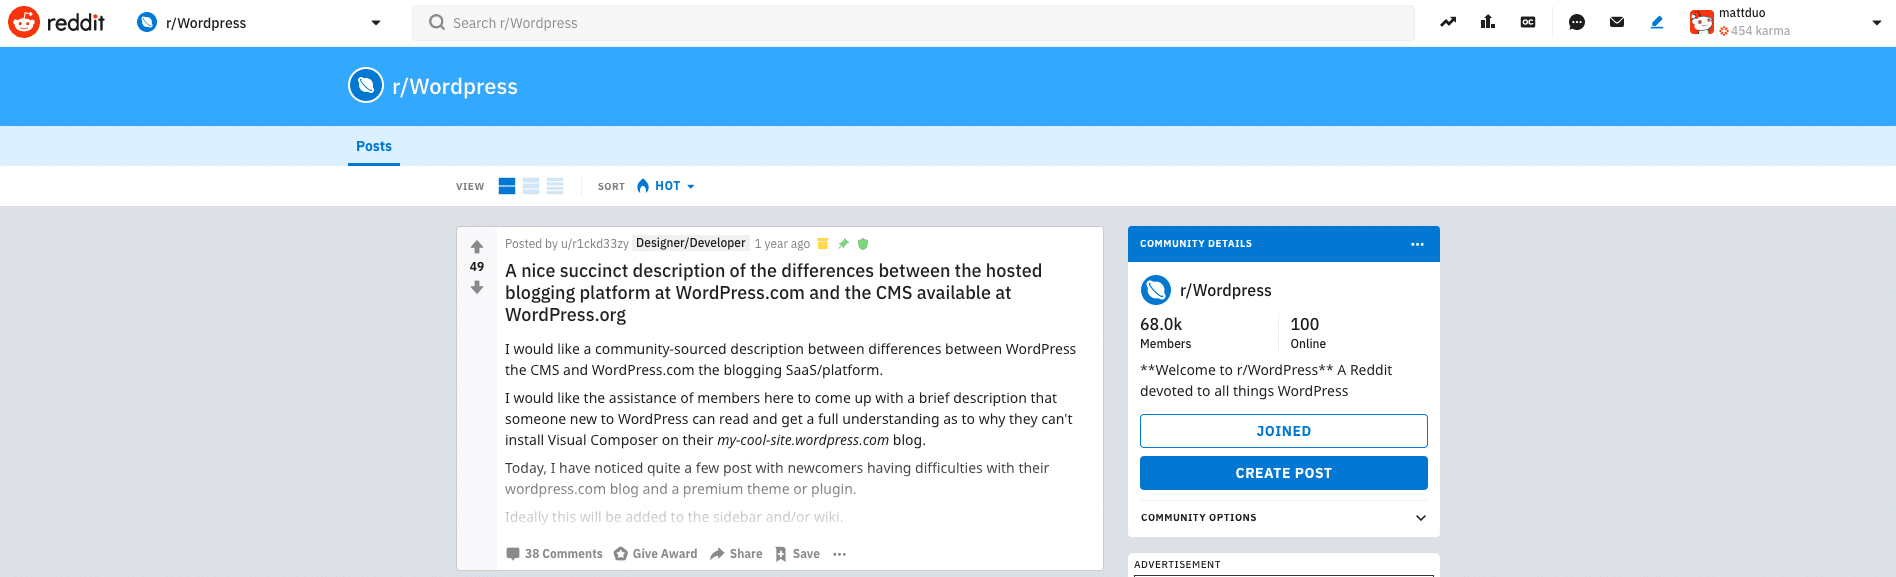 WordPress sur Reddit